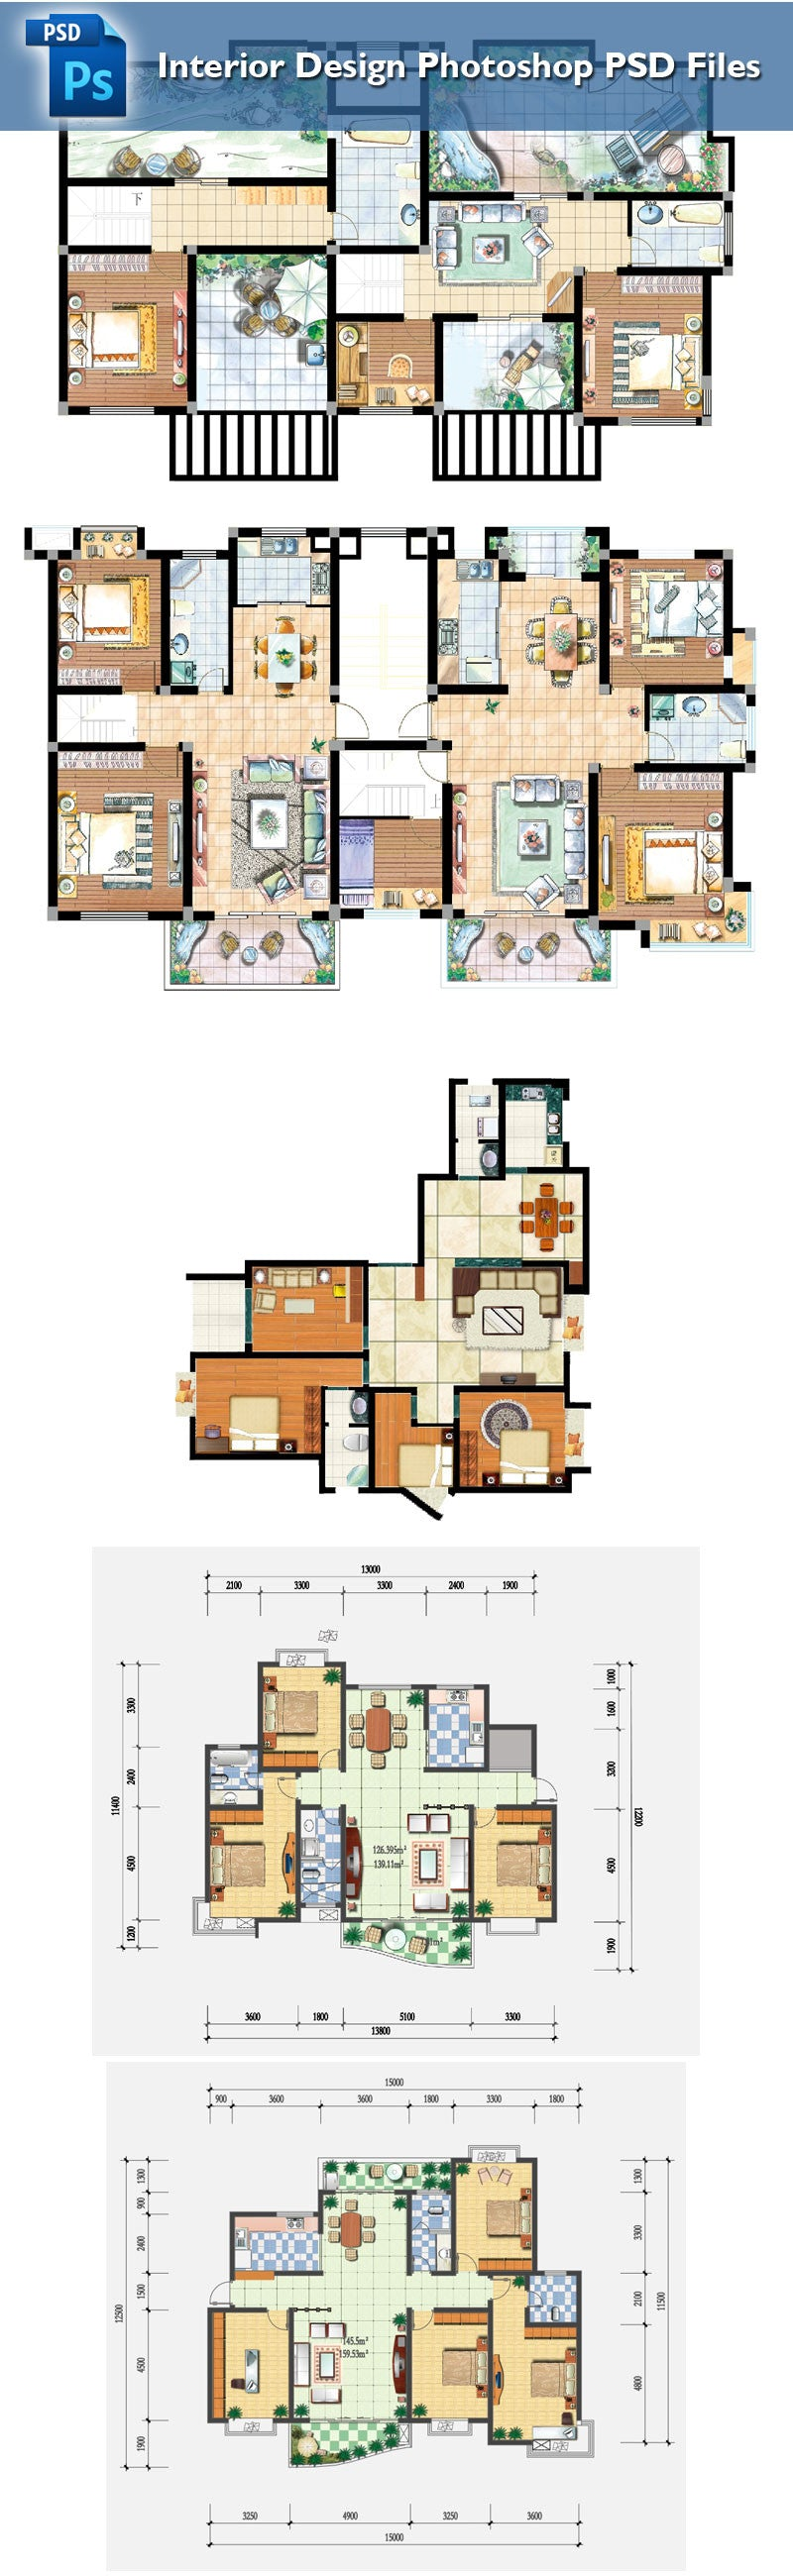 15 Types Of Interior Design Layouts Photoshop PSD Template V.2 ...